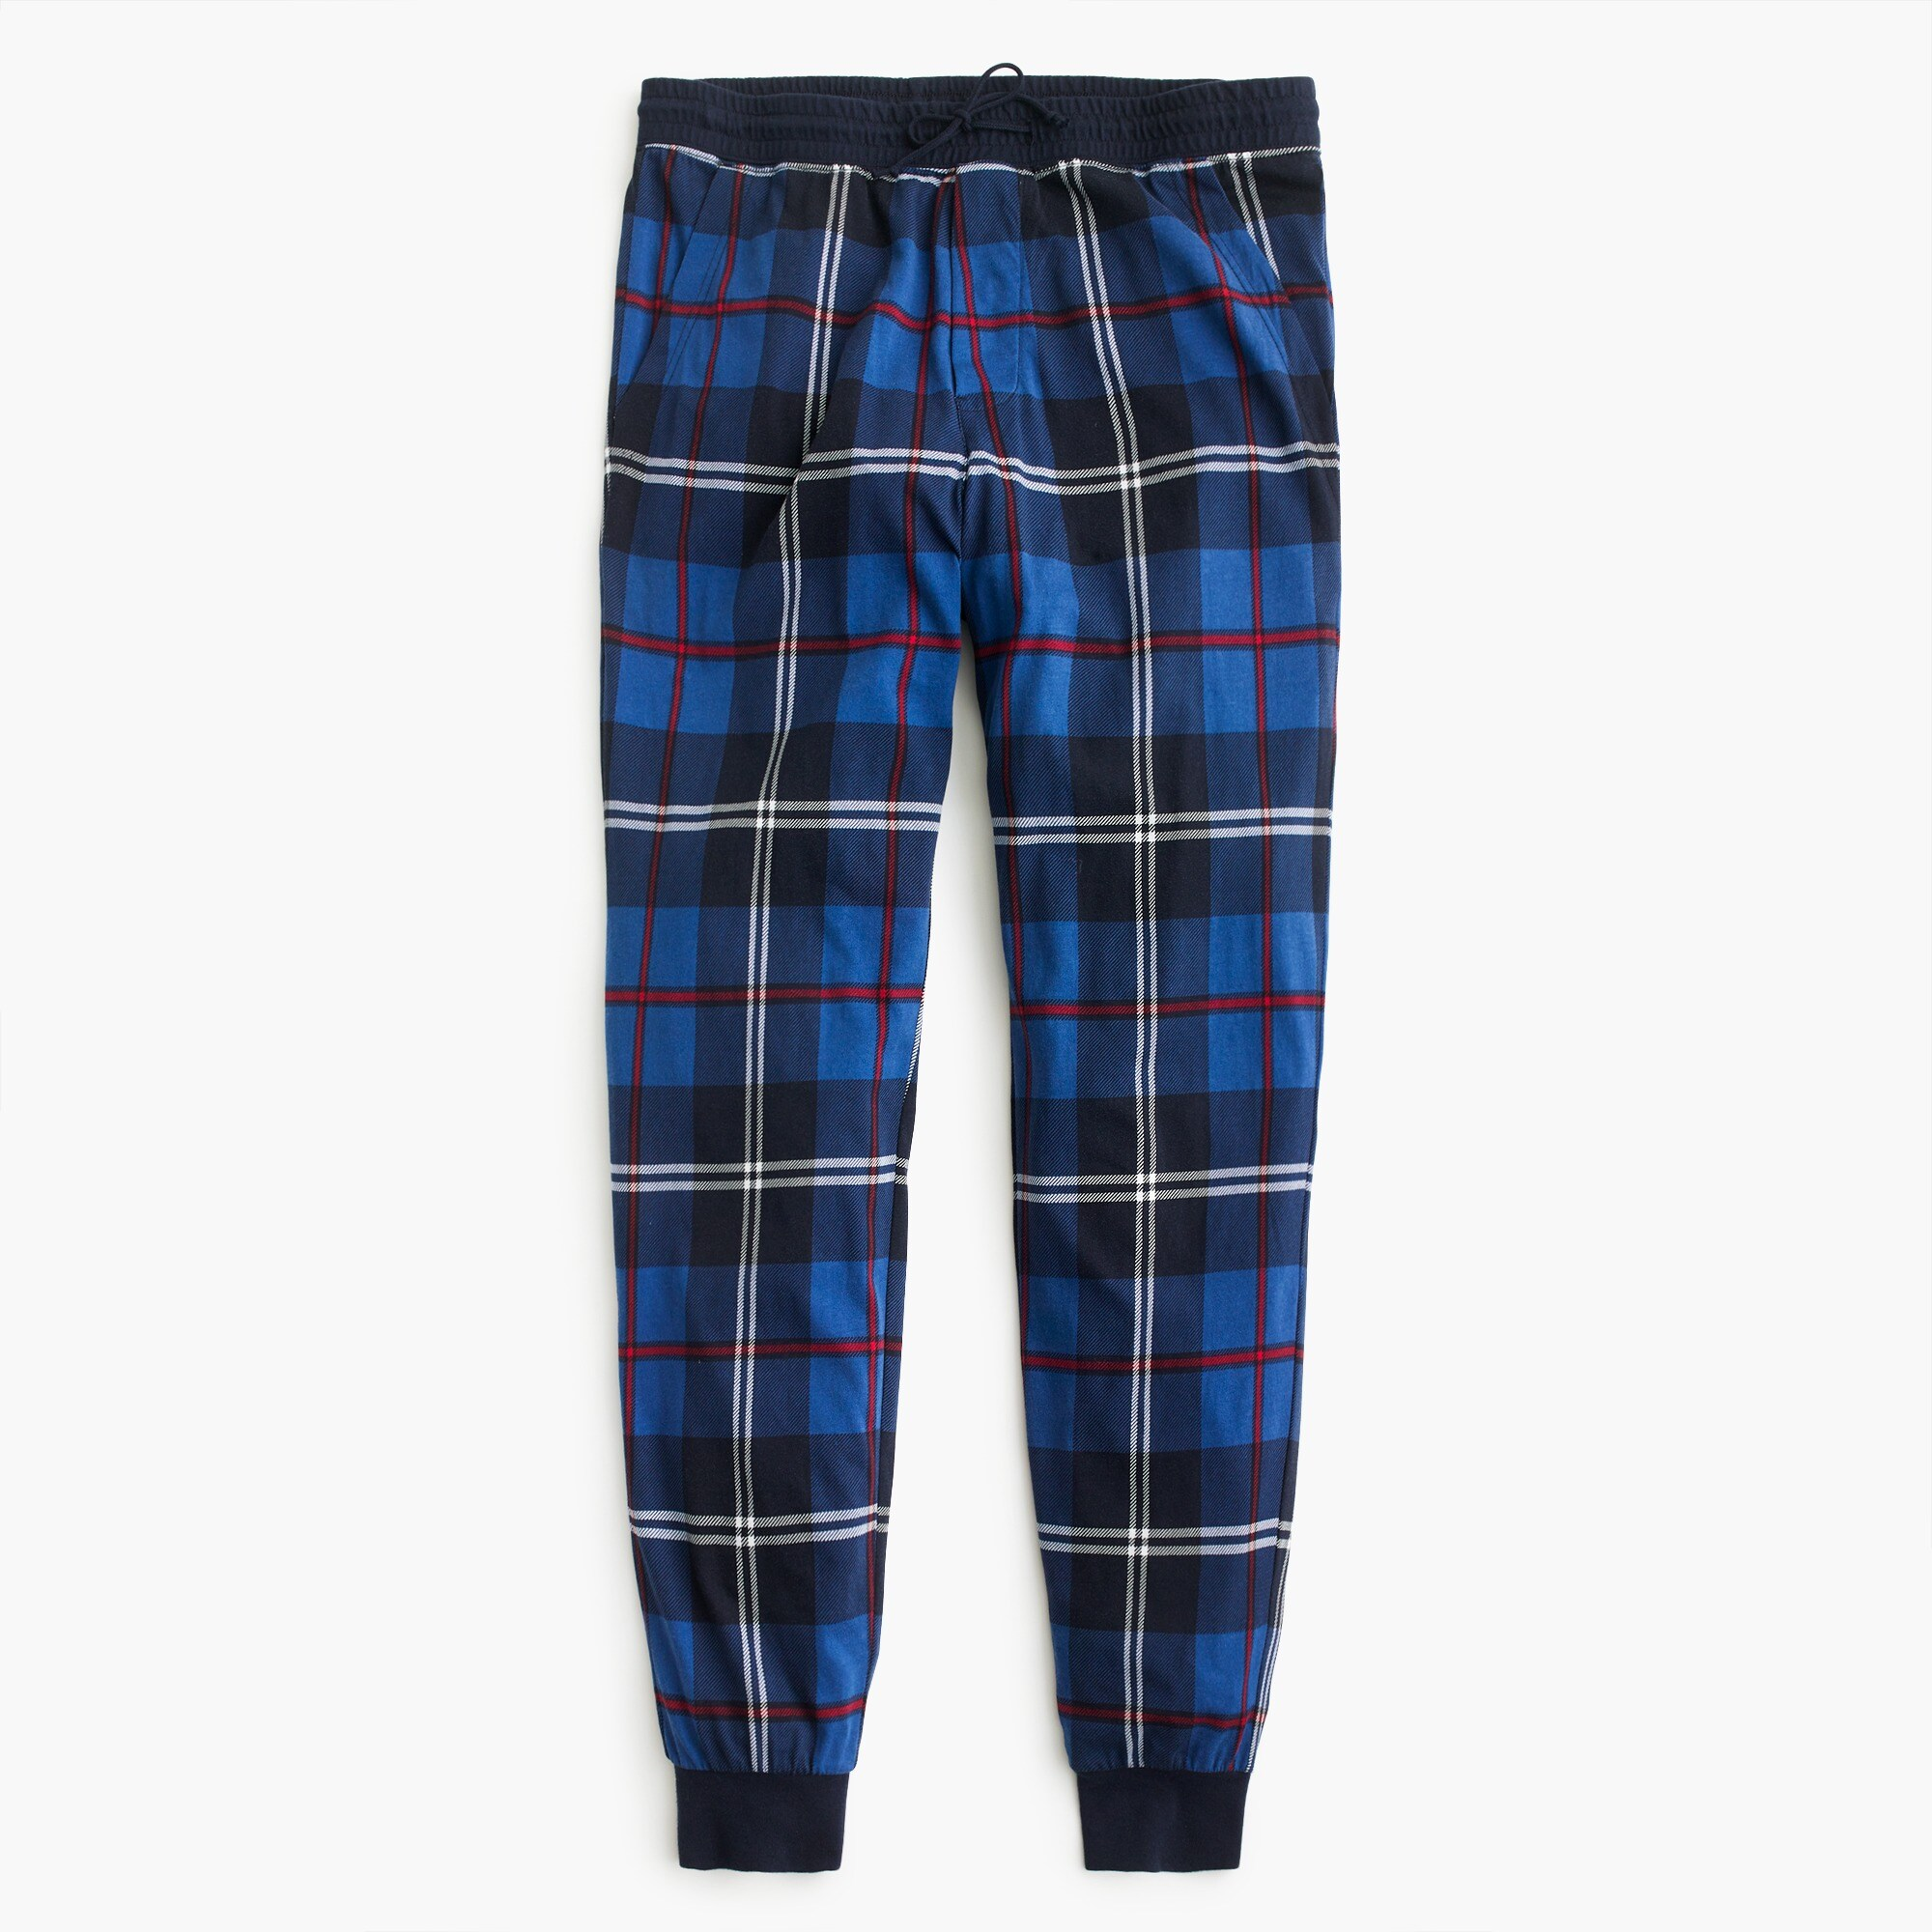 Image 2 for Flannel lounge pant